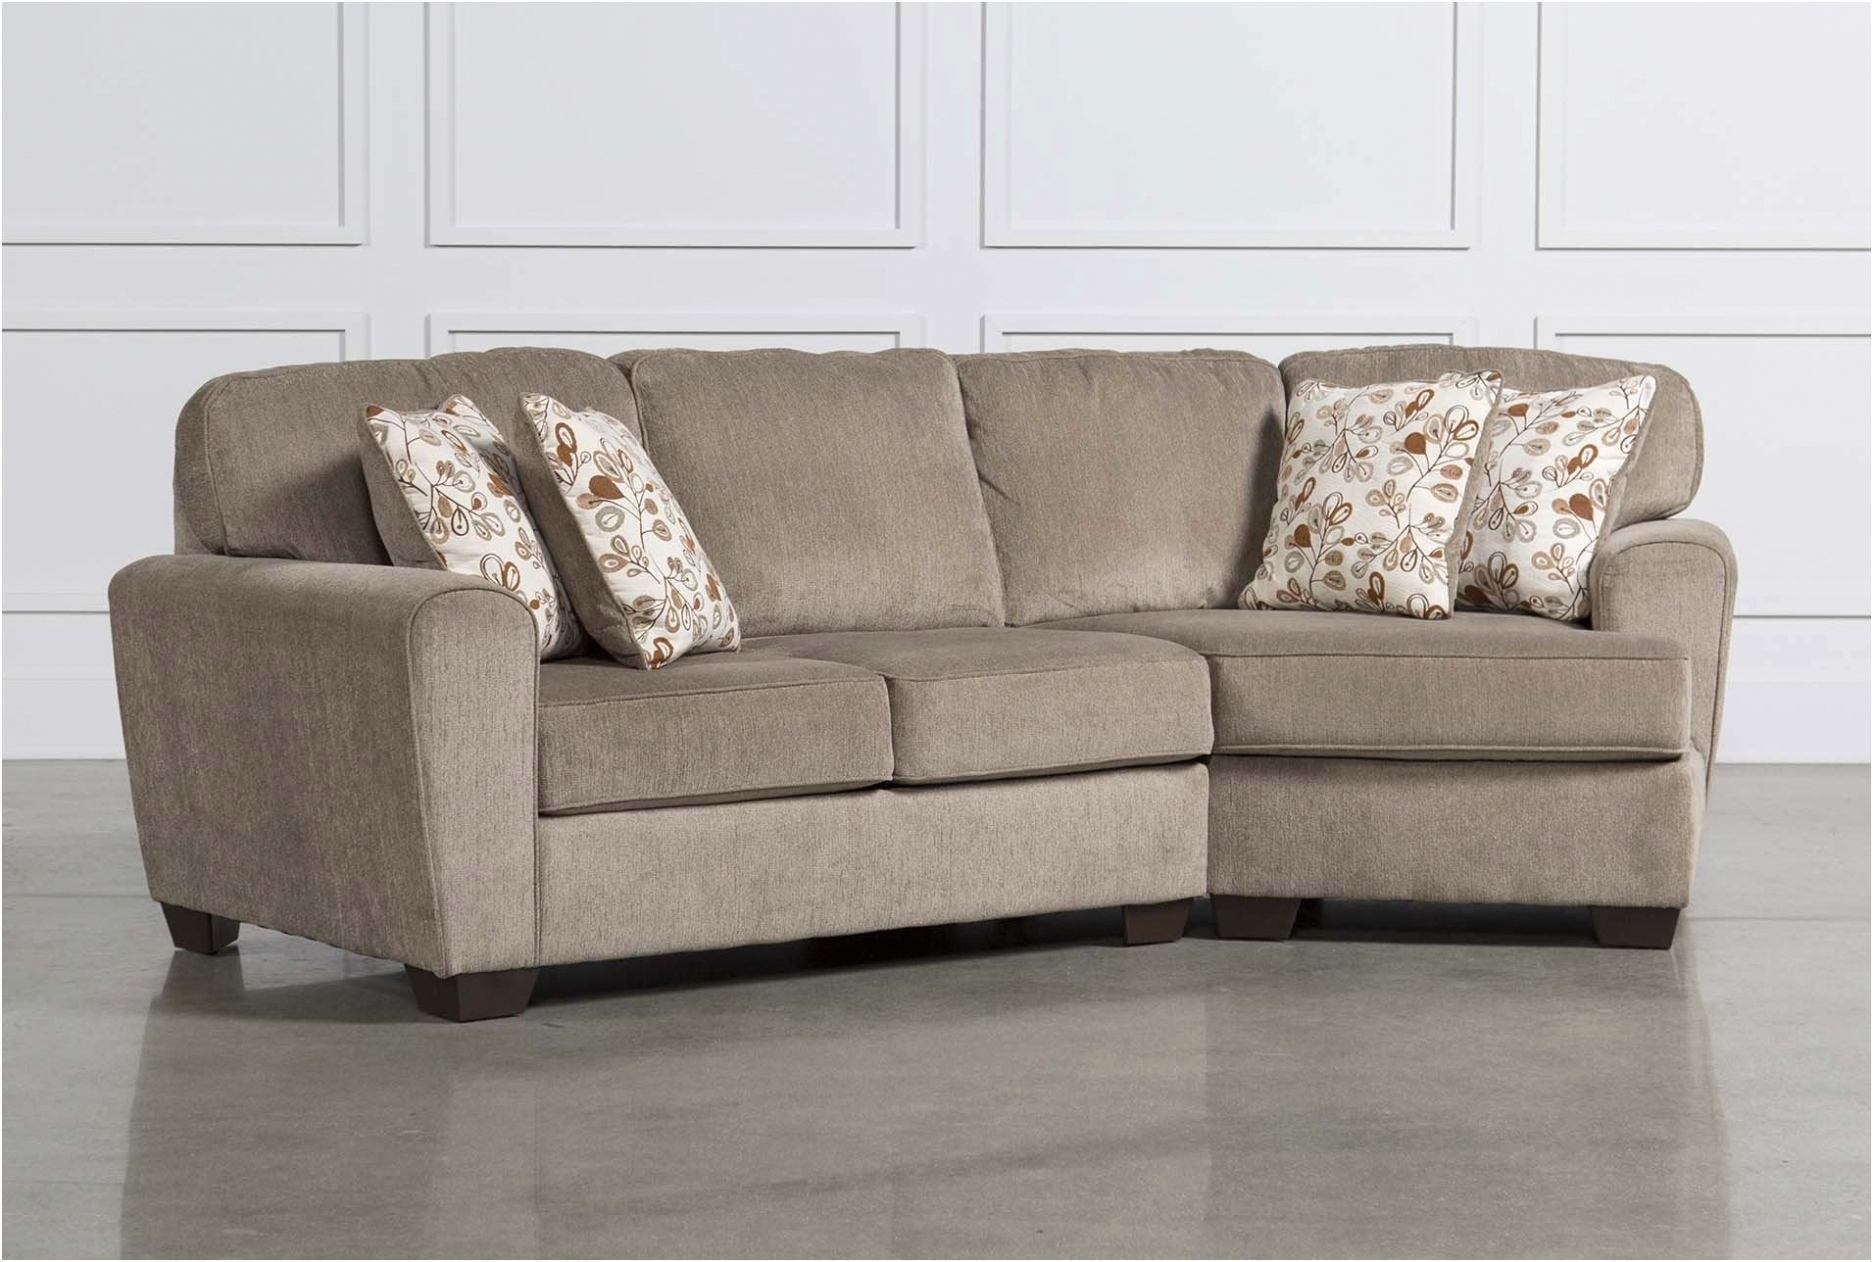 Well Known Sectional Sofas With Cuddler Inside Furniture: Fresh Sectional Sofa With Cuddler Chaise New – Sofa (View 18 of 20)